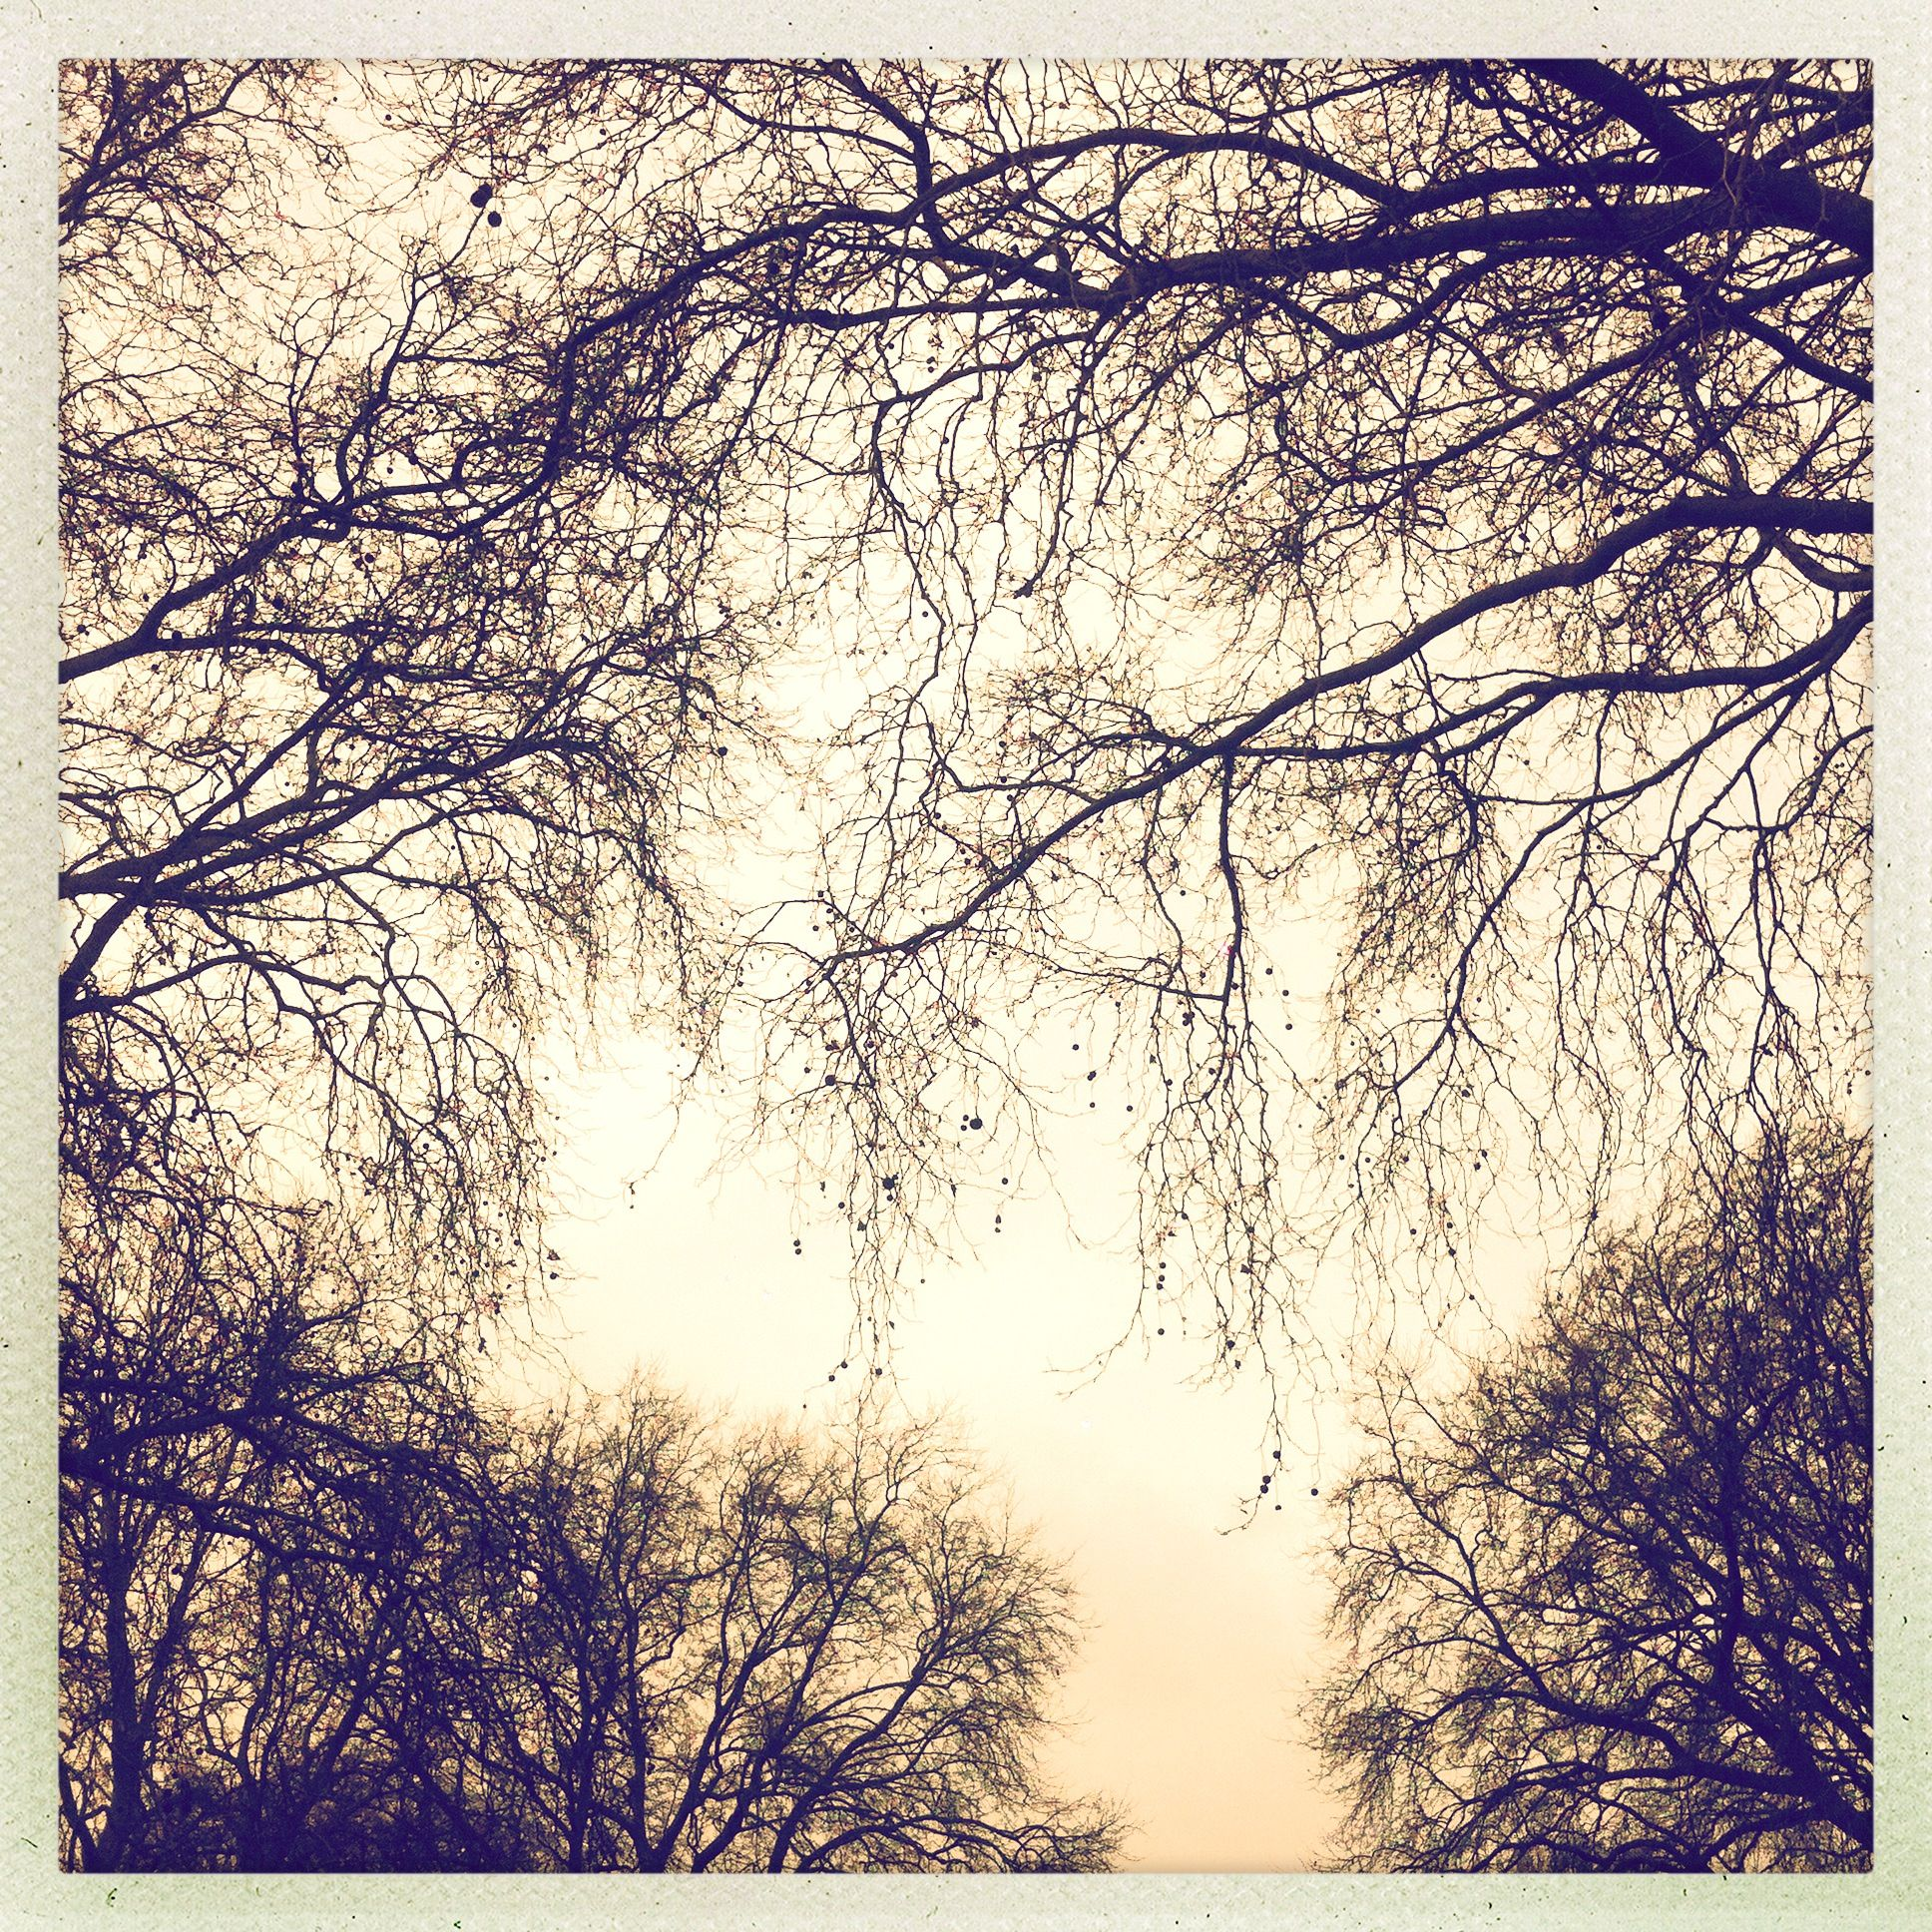 © Stefan Baker #Tree #Skies #Sky #Photography #Hipstamatic #Trees #Branches #Branch #Winter